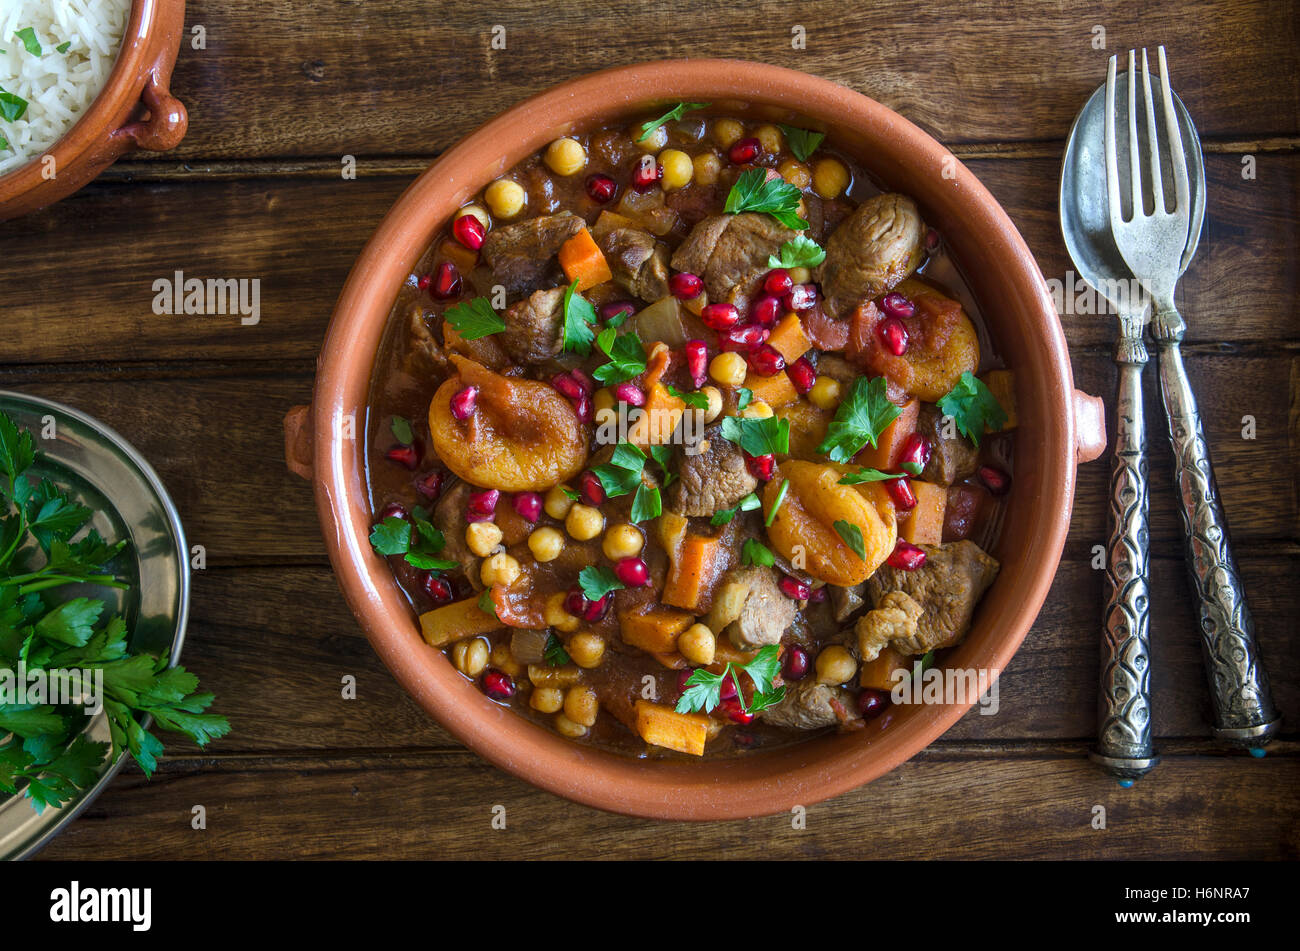 Lamb tagine with chickpeas, apricots and pomegranate seeds Stock Photo